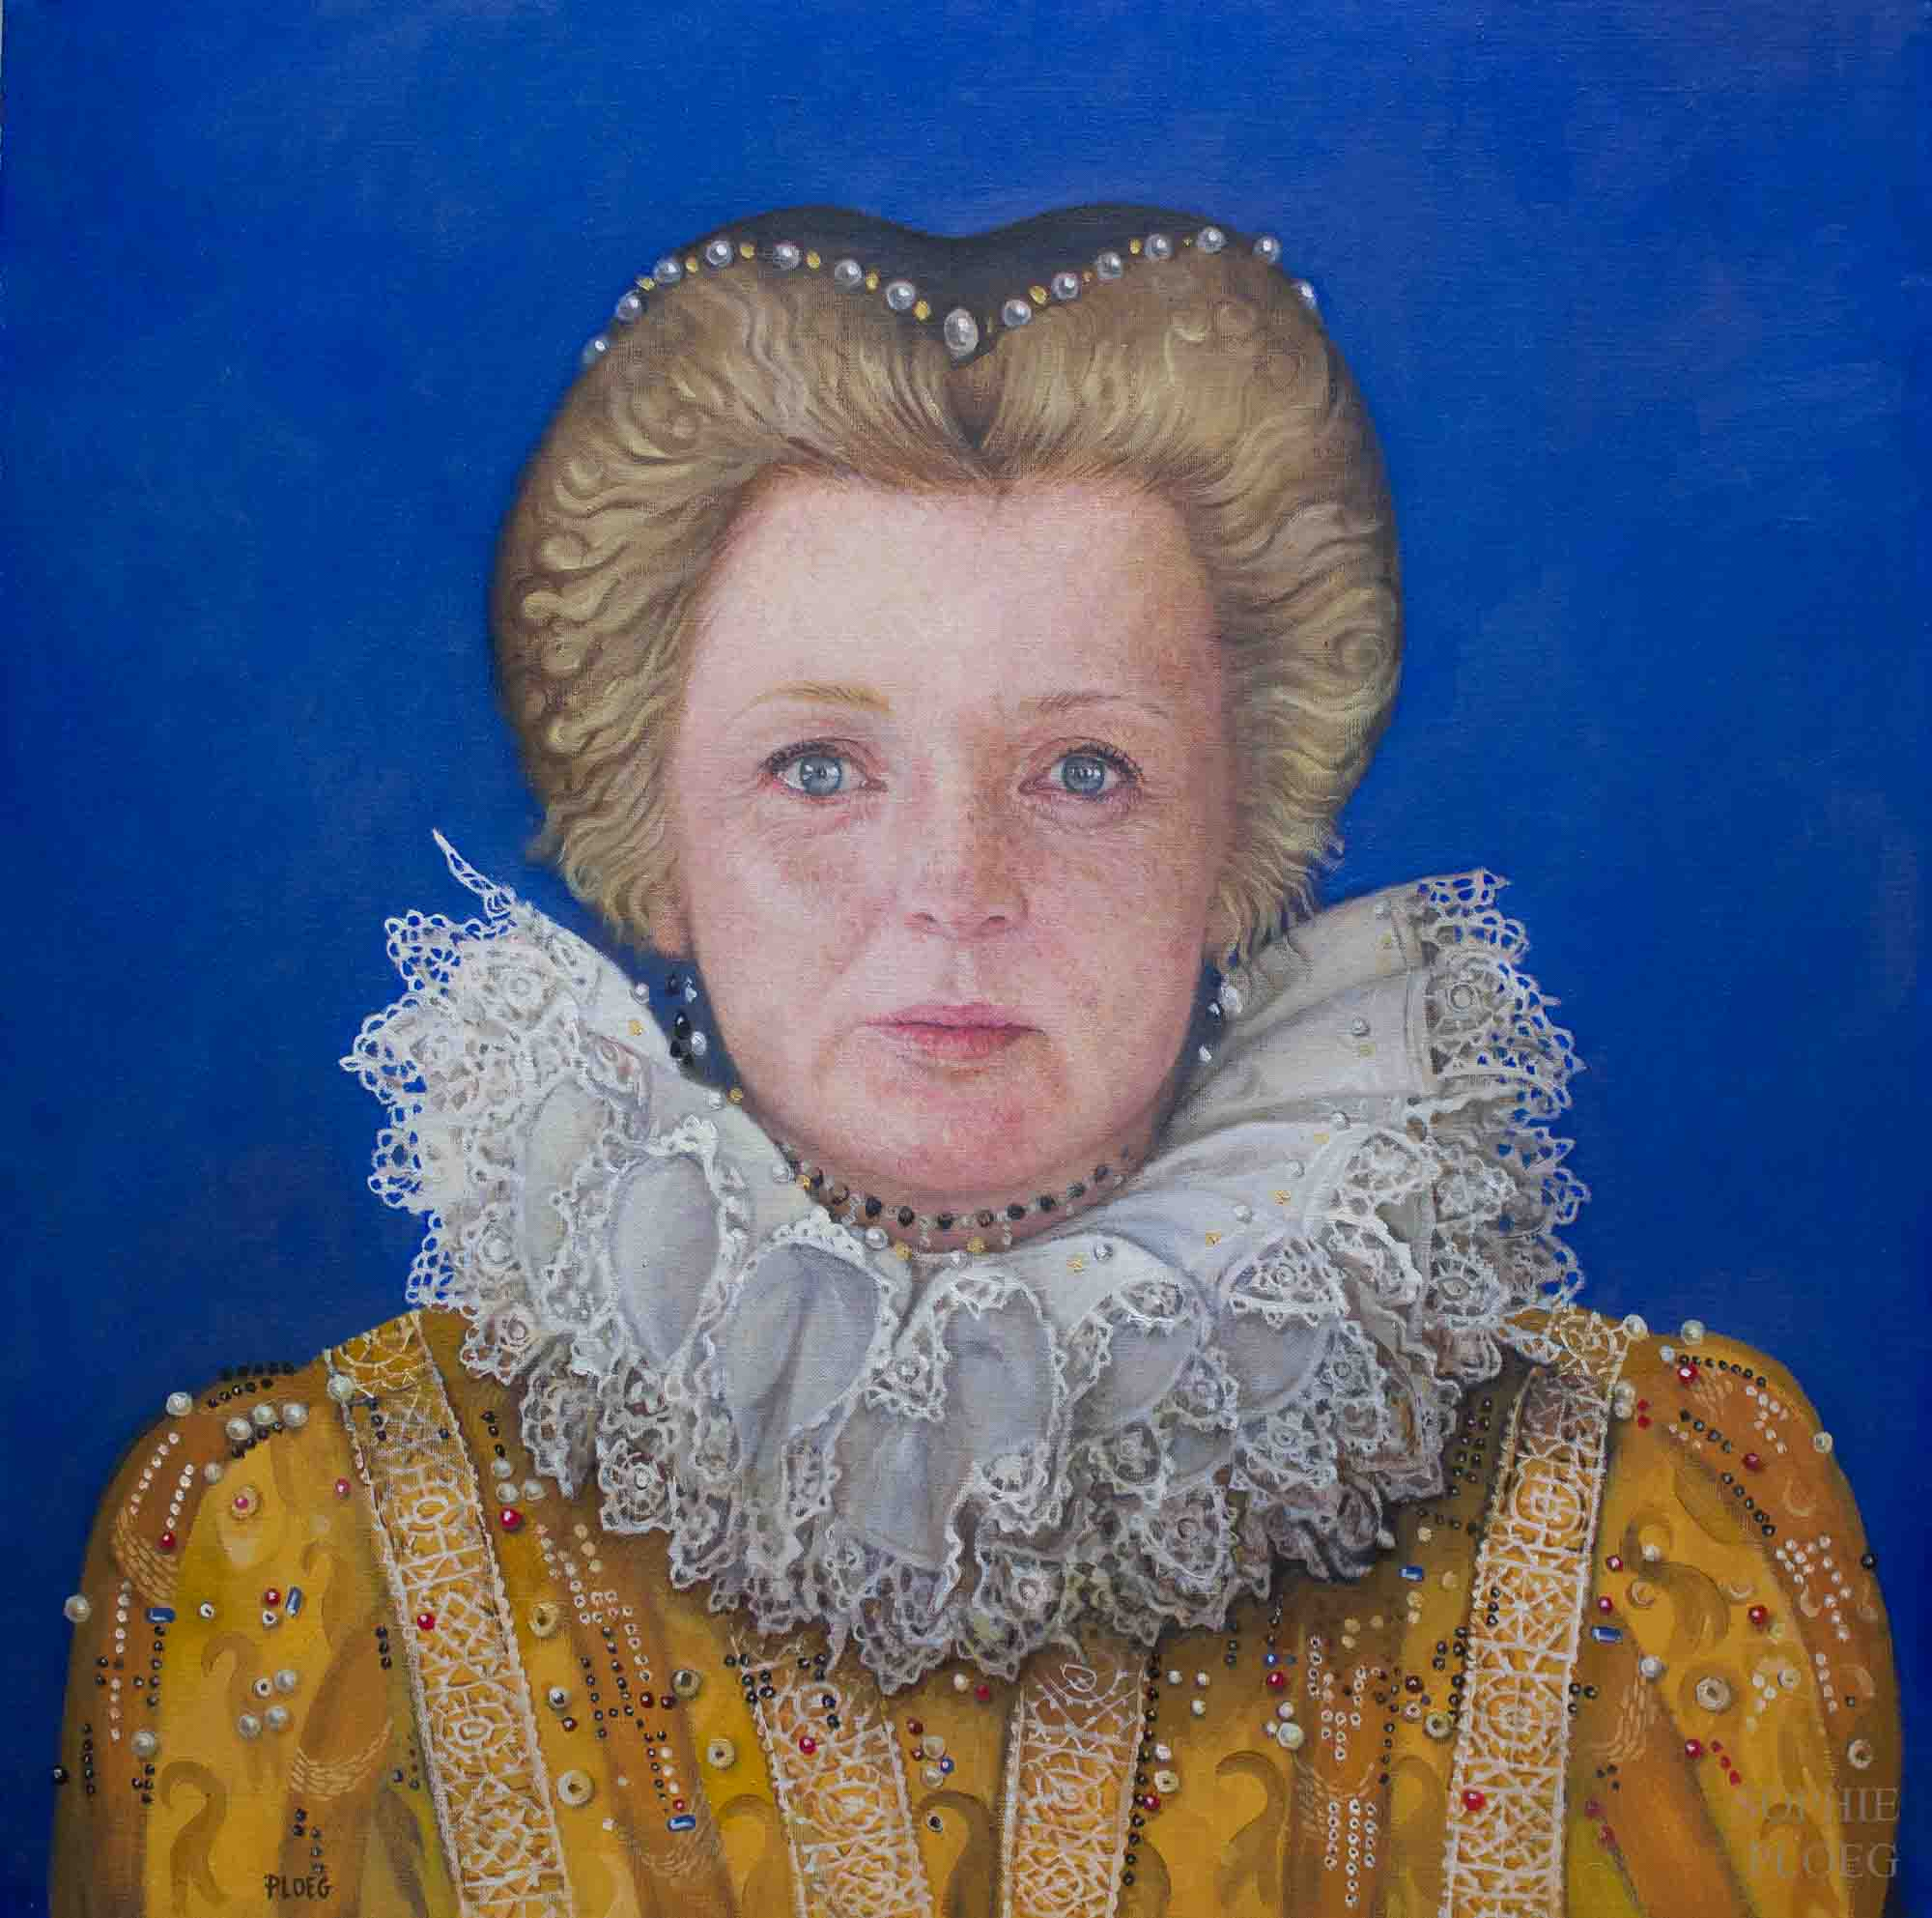 Sophie Ploeg, Kate Elizabeth, Oil on linen, 51x51cm. Available